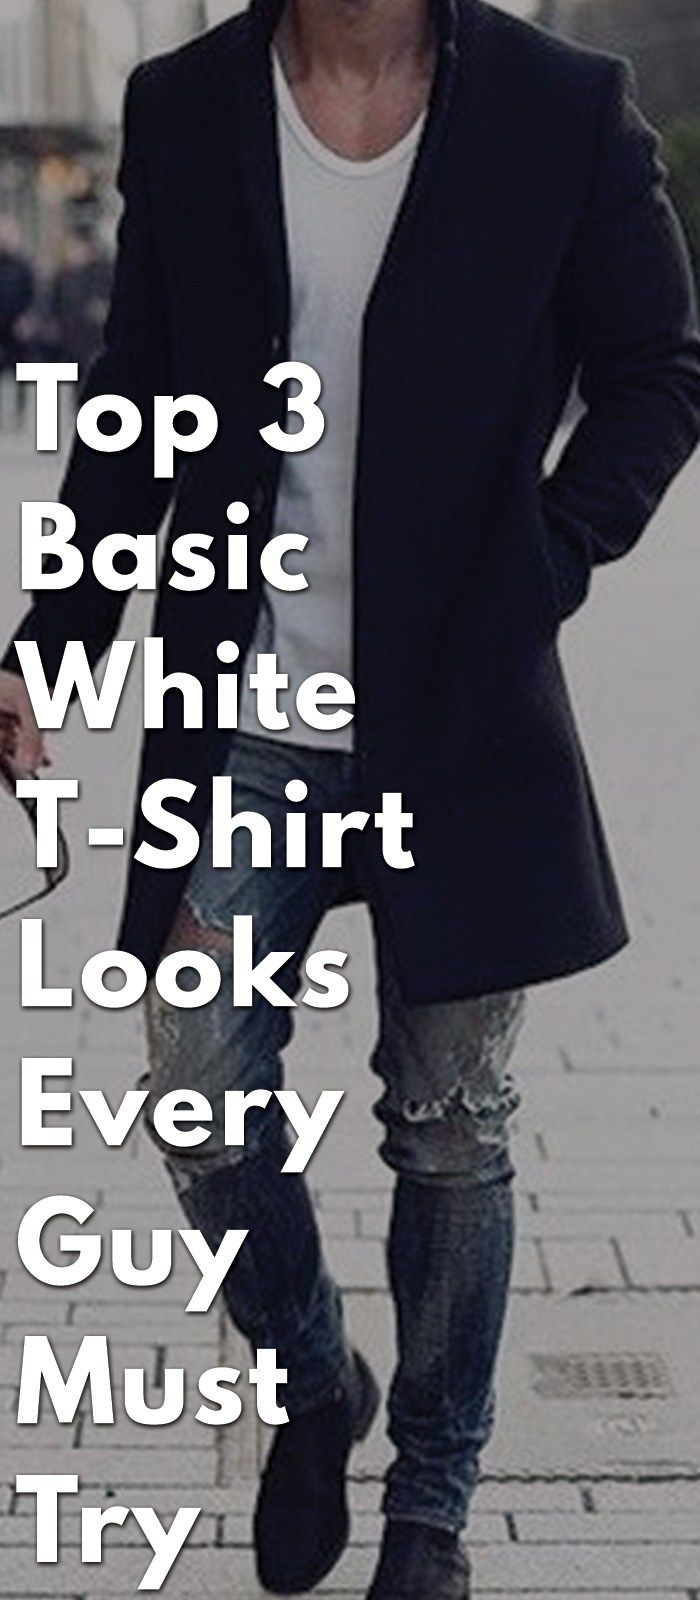 cdc440bb8ba Top 3 Basic White T-Shirt Looks Every Guy Must Try